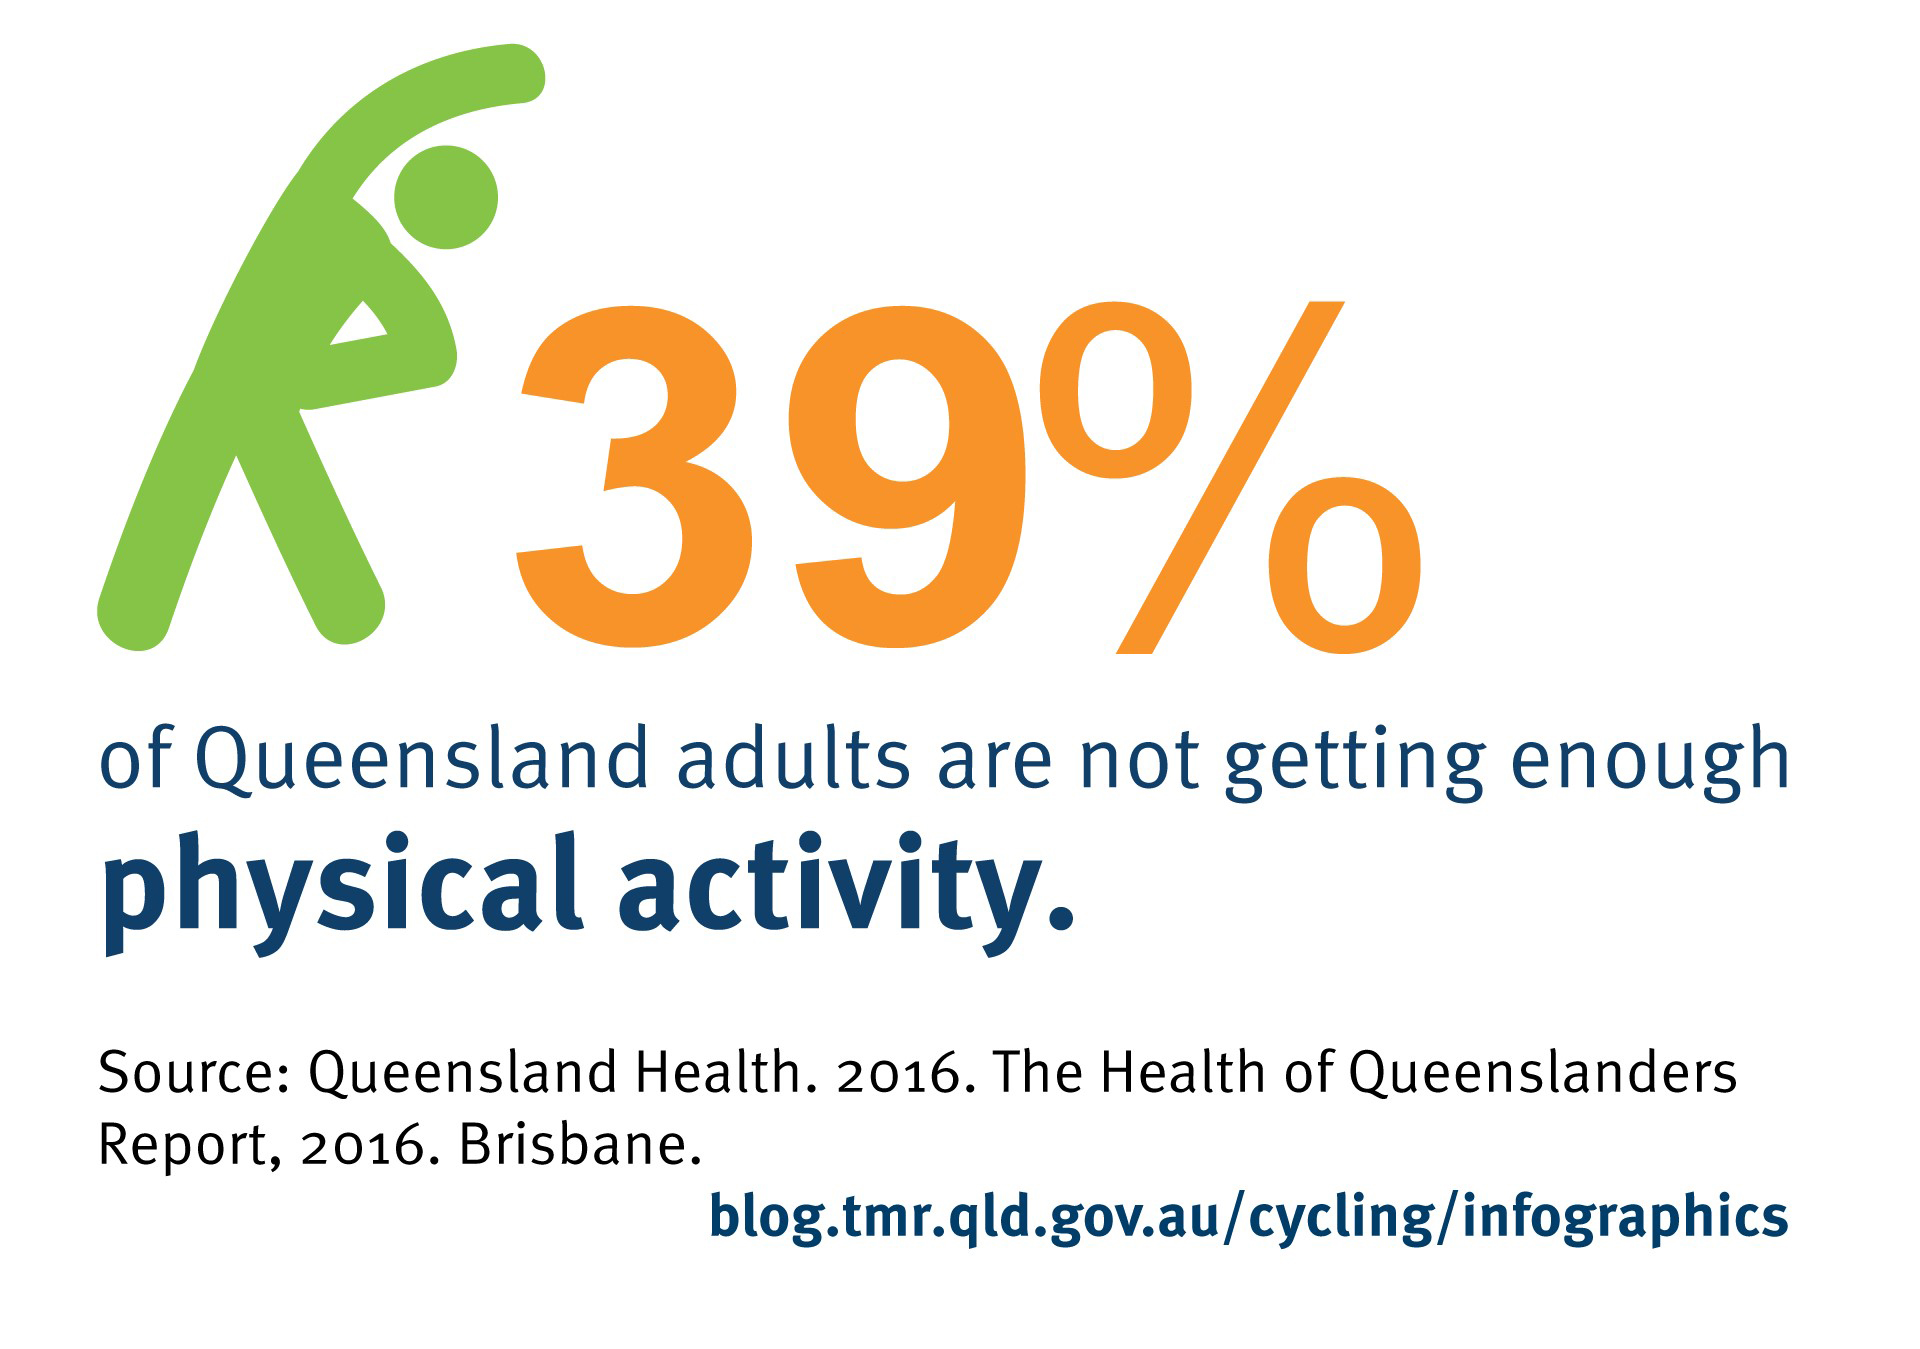 39% of Queensland adults are not getting enough physical activity (Queensland Health. 2016. The Health of Queenslanders Report, 2016. Brisbane).